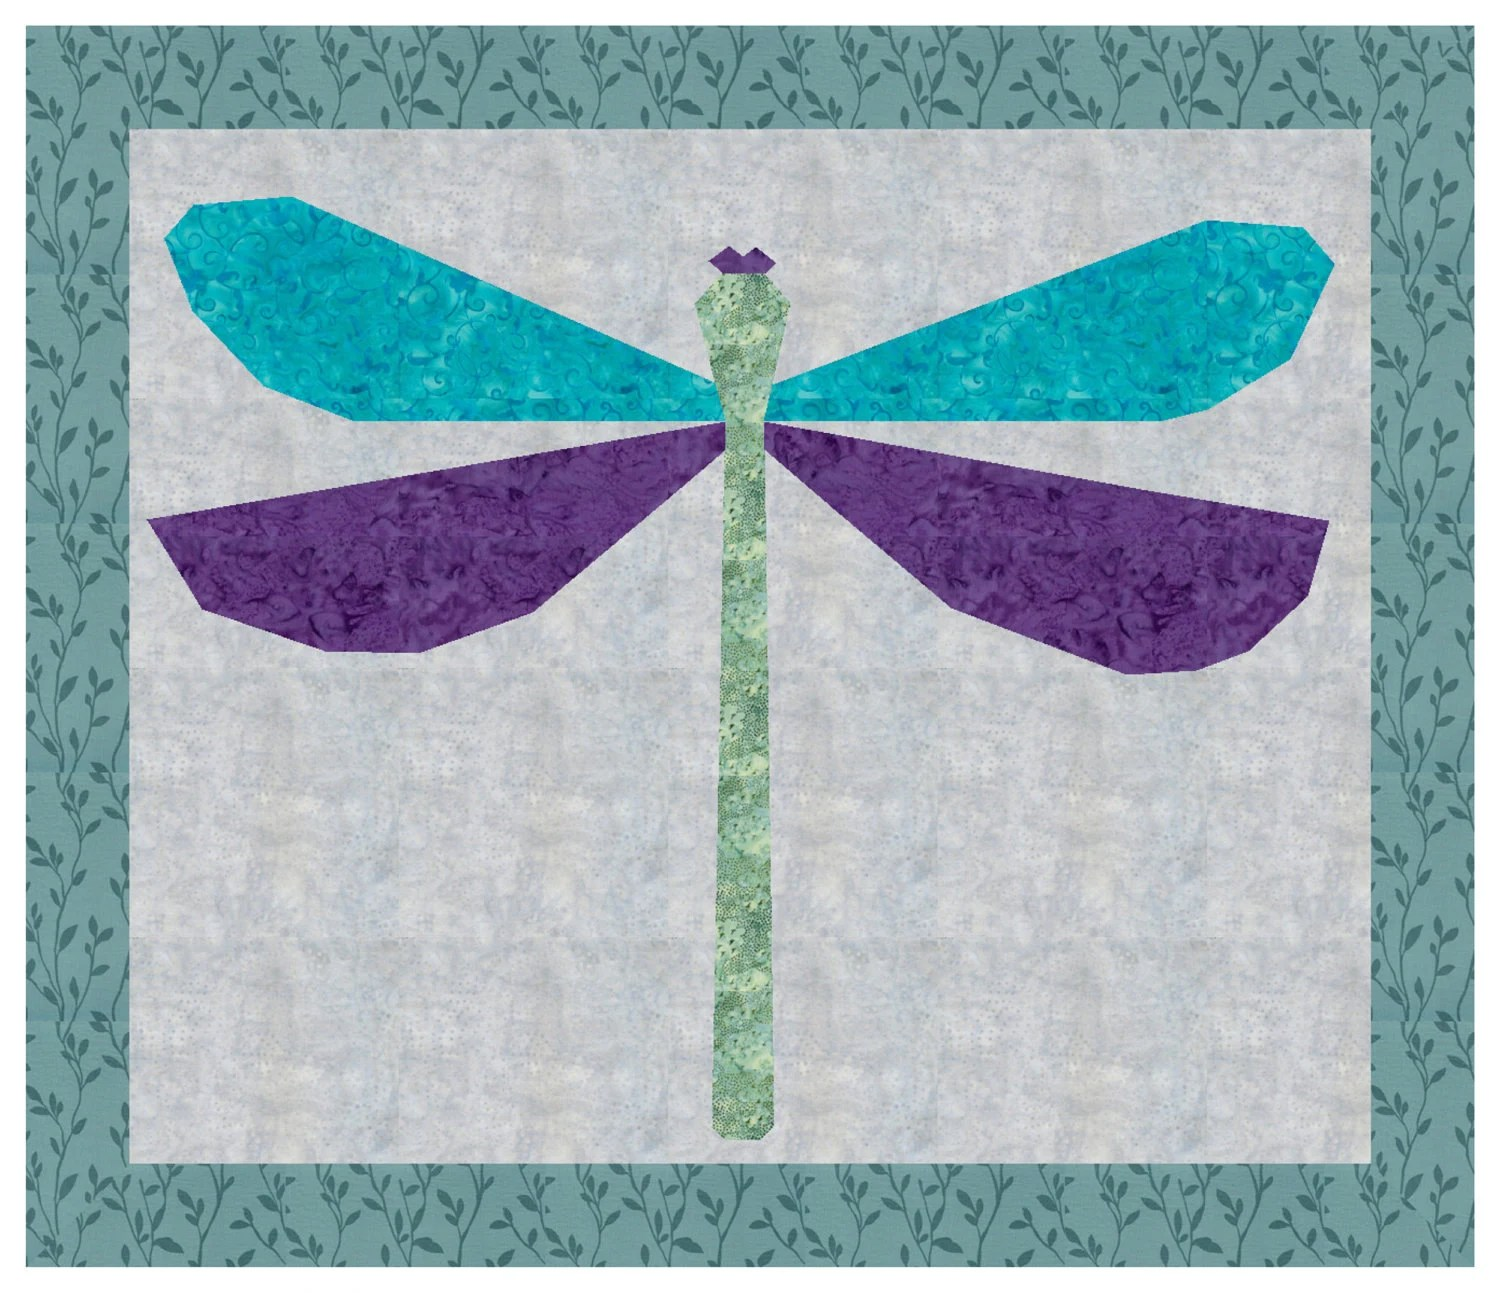 PDF Pattern Download Dragonfly Spring Foundation Paper Piecing Pieced Quilt Block Pattern shown in teal purple and greens